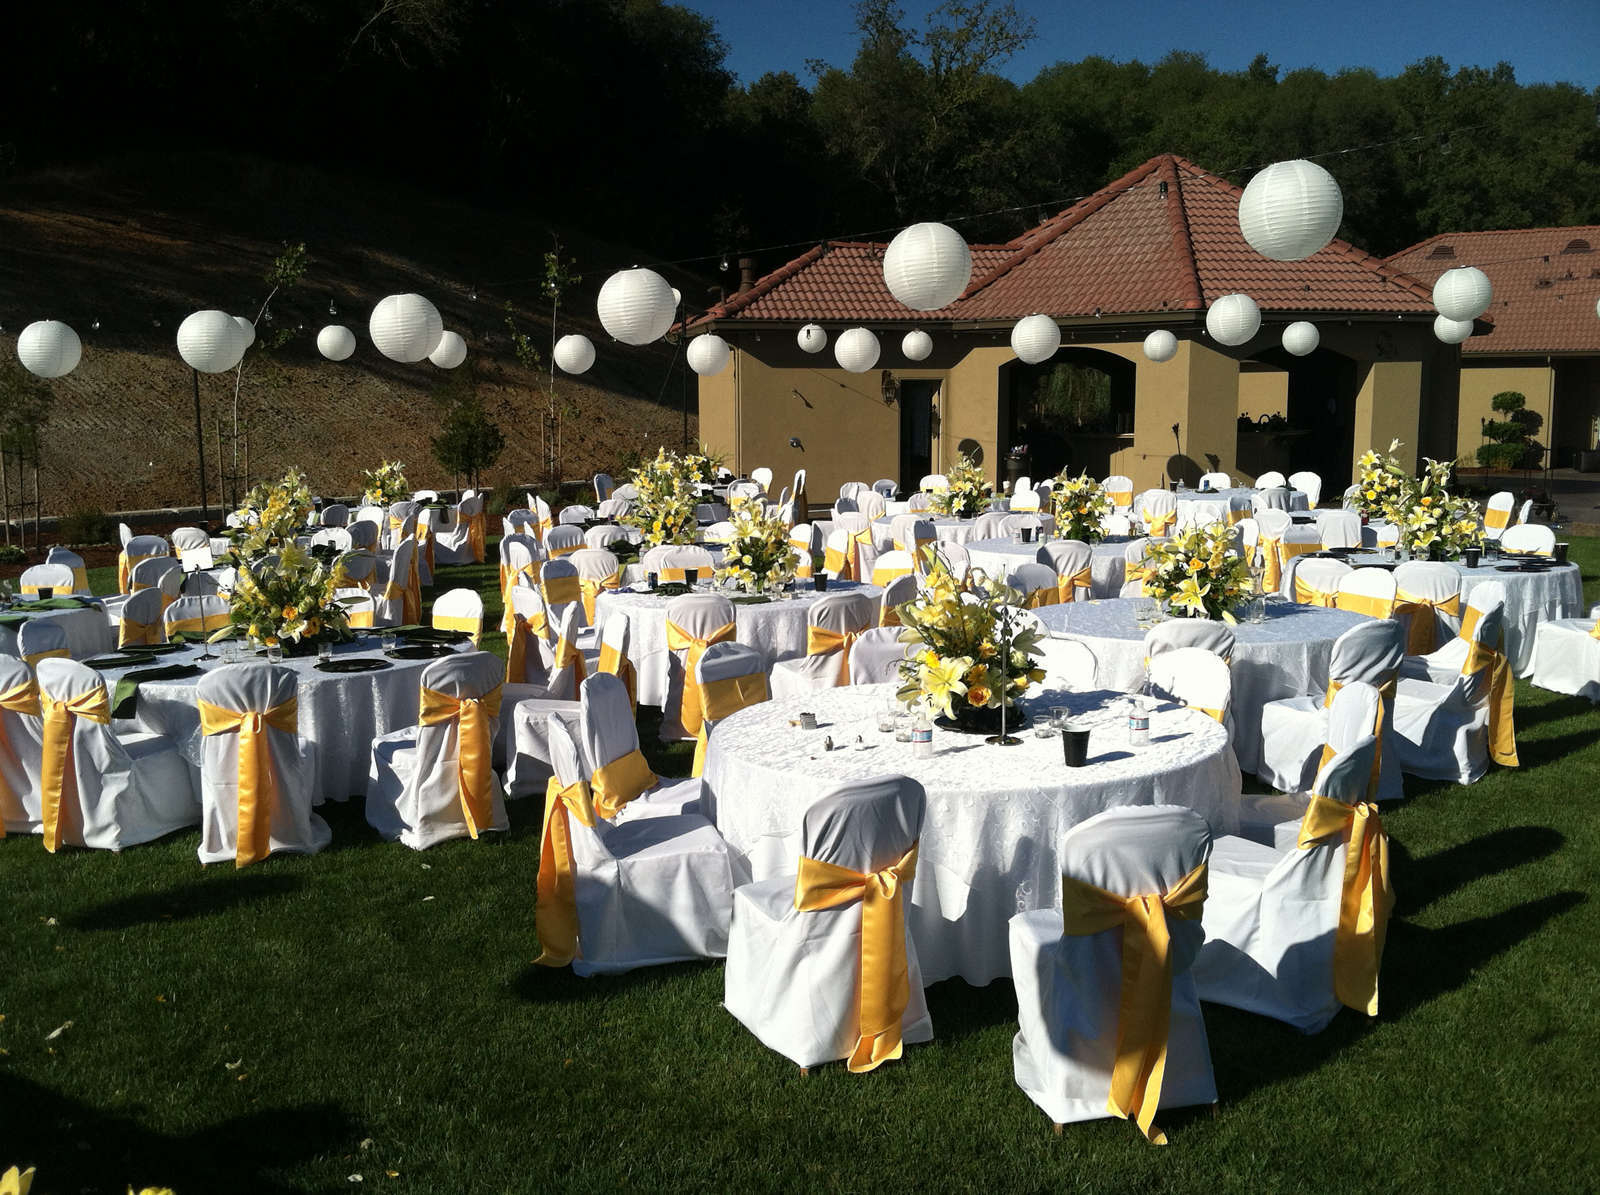 Garden Wedding Round Tables And Chairs Decor (Image 2 of 8)